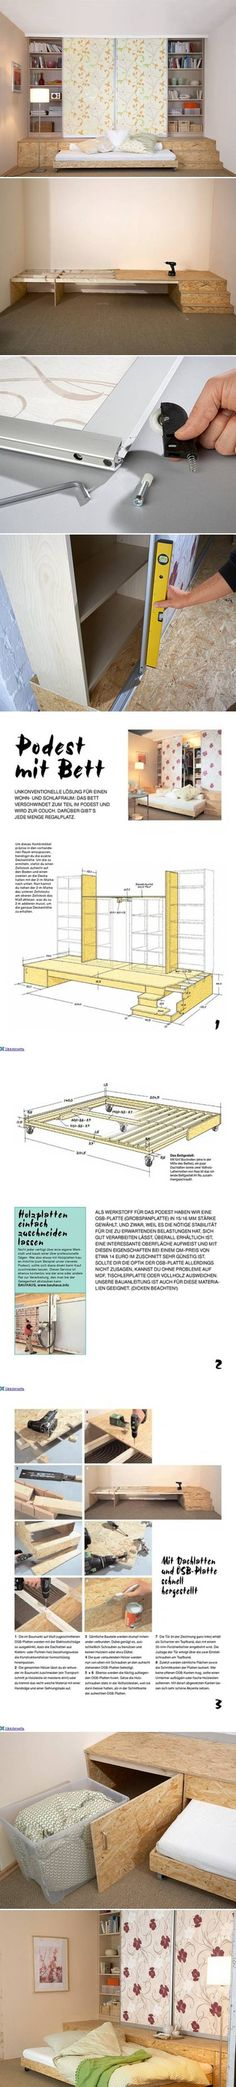 This looks pretty cool, with lots of storage space.DIY Three in One Furniture (Diy Furniture Living Room) Diy Furniture Projects, Woodworking Furniture, Woodworking Plans, Furniture Design, Diy Projects, Wooden Furniture, Tiny Spaces, Small Rooms, Small Apartments